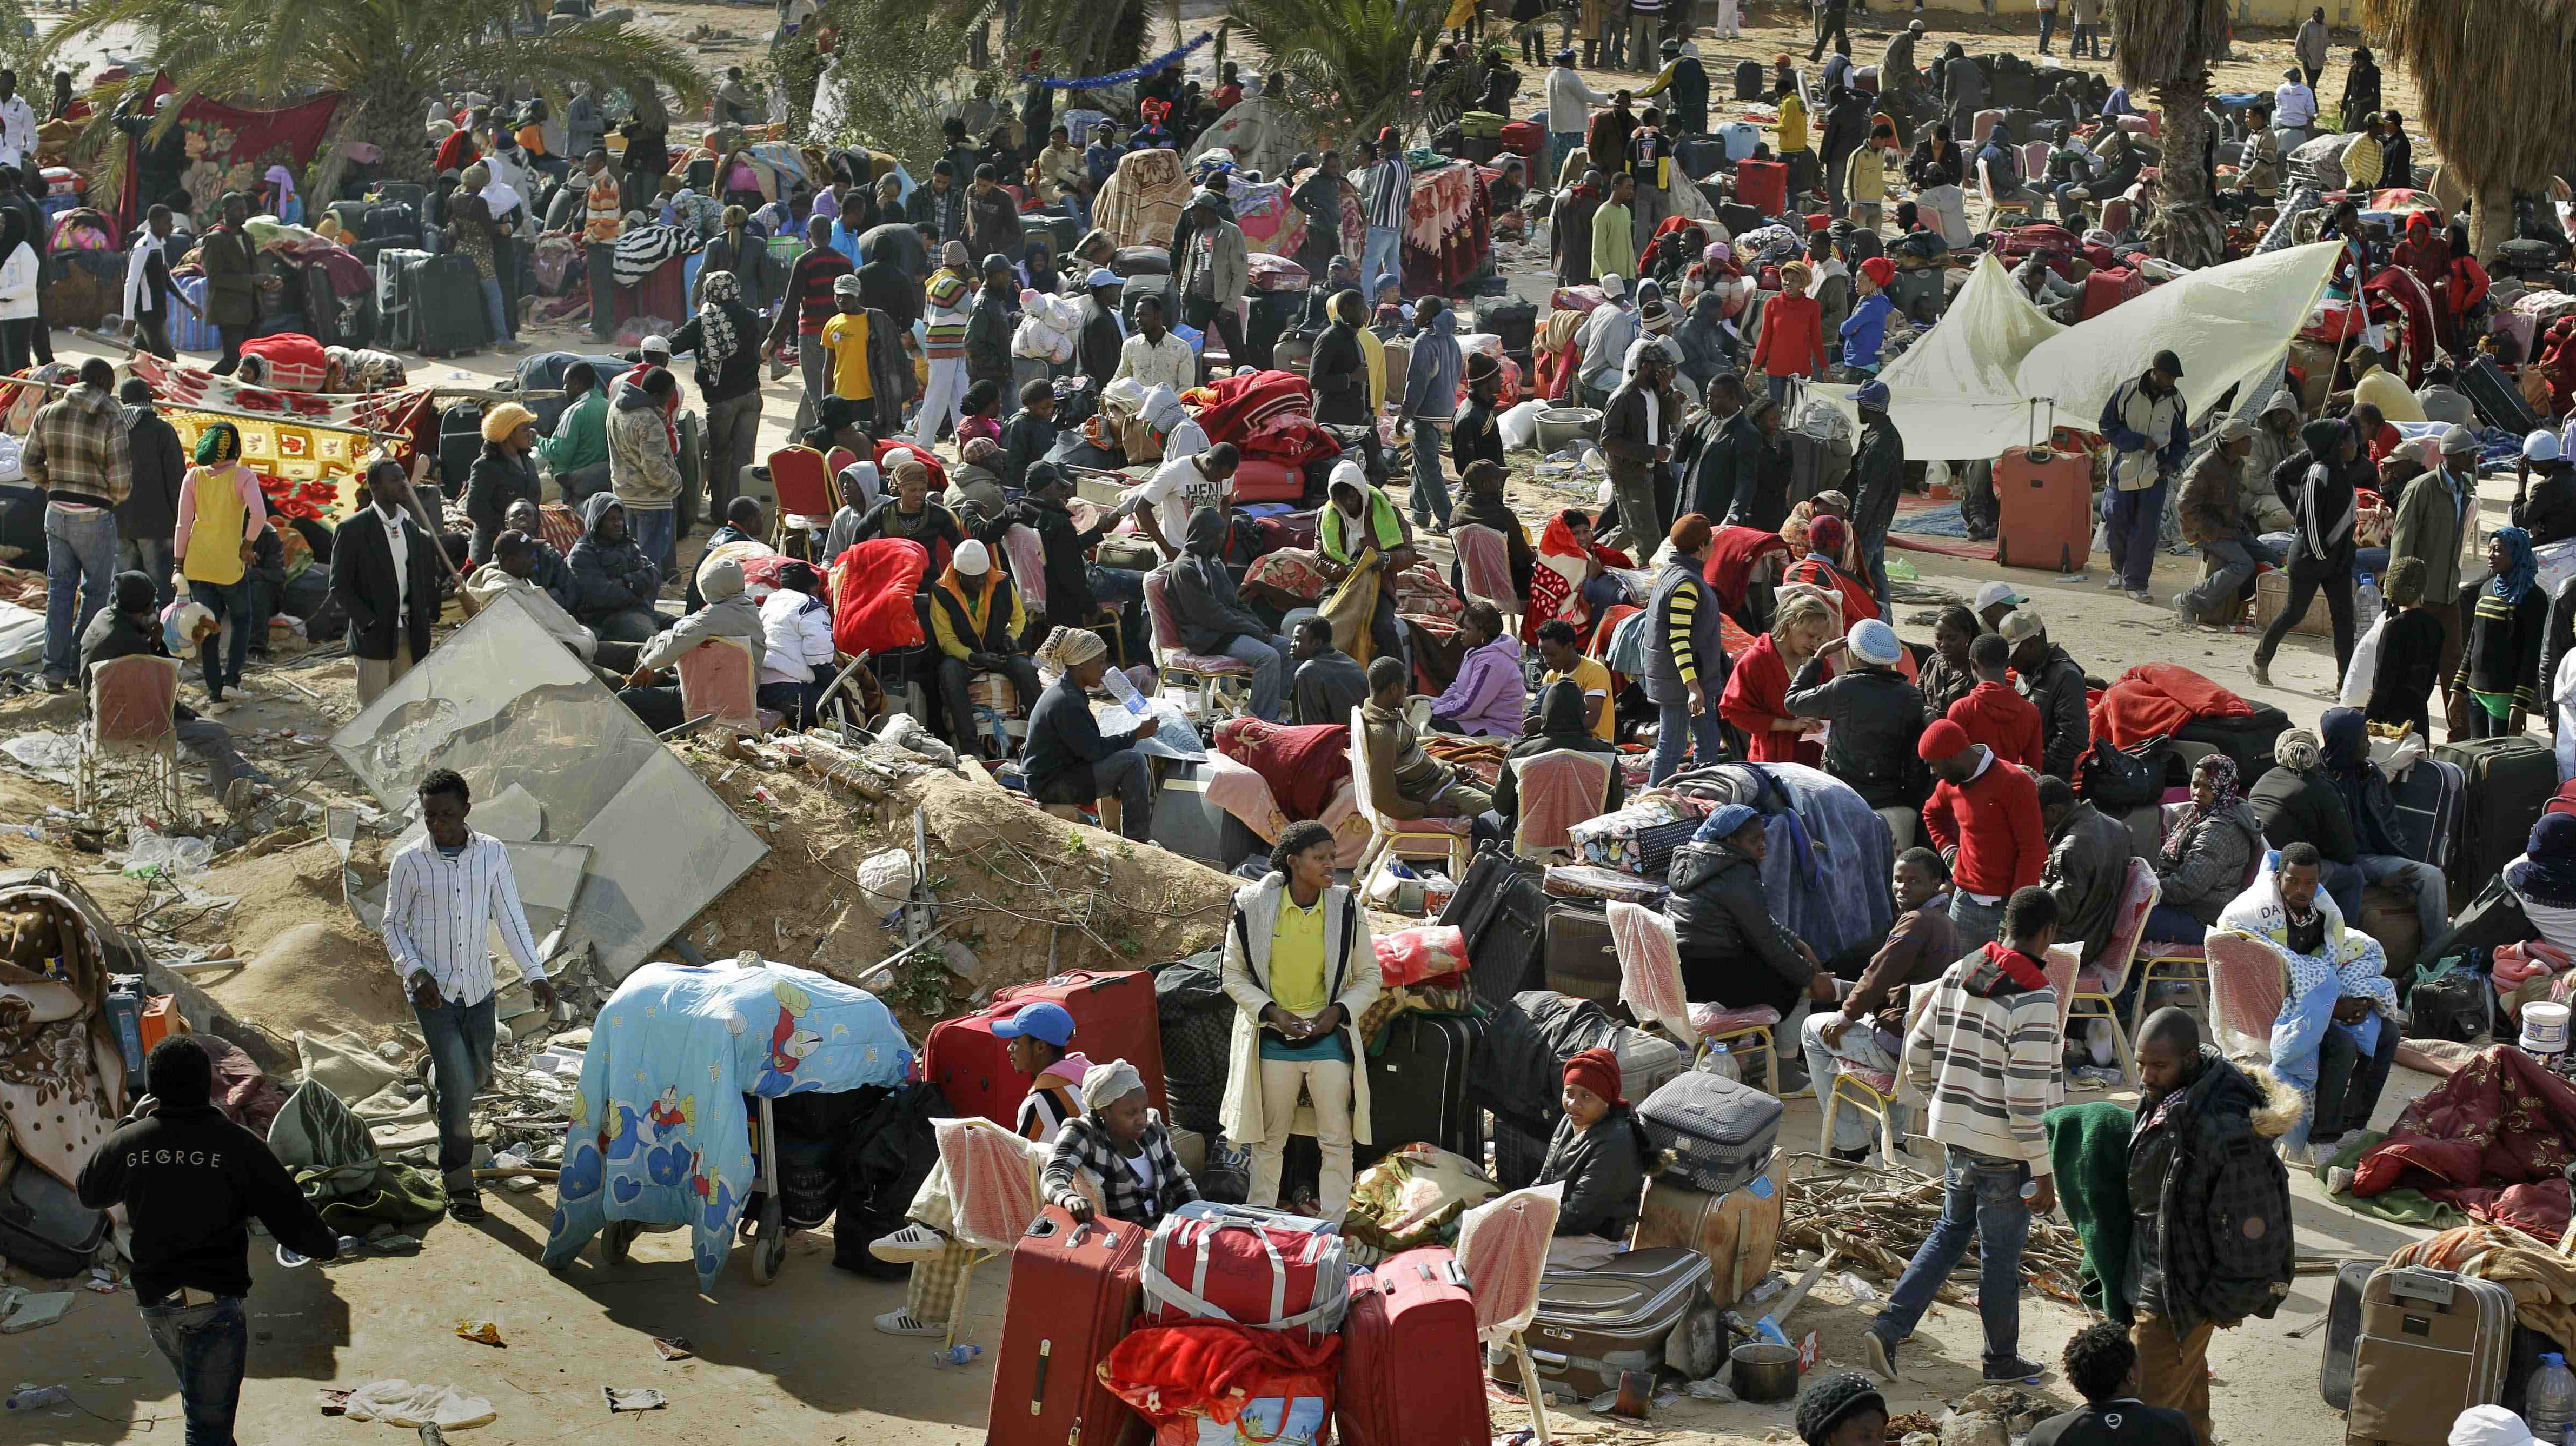 Nigerians and Ghanaians sit with their belongings in a makeshift open-air camp at Tripoli International Airport in Libya Tuesday, March 1, 2011. While many European countries evacuated their citizens from Libya, thousands of foreigners including migrant workers from Egypt and Sub-Saharan countries such as Nigeria and Ghana have been camped out at the airport for over a week, many unable to leave the country and fearing for their safety in the unstable situation. (AP Photo/Ben Curtis)